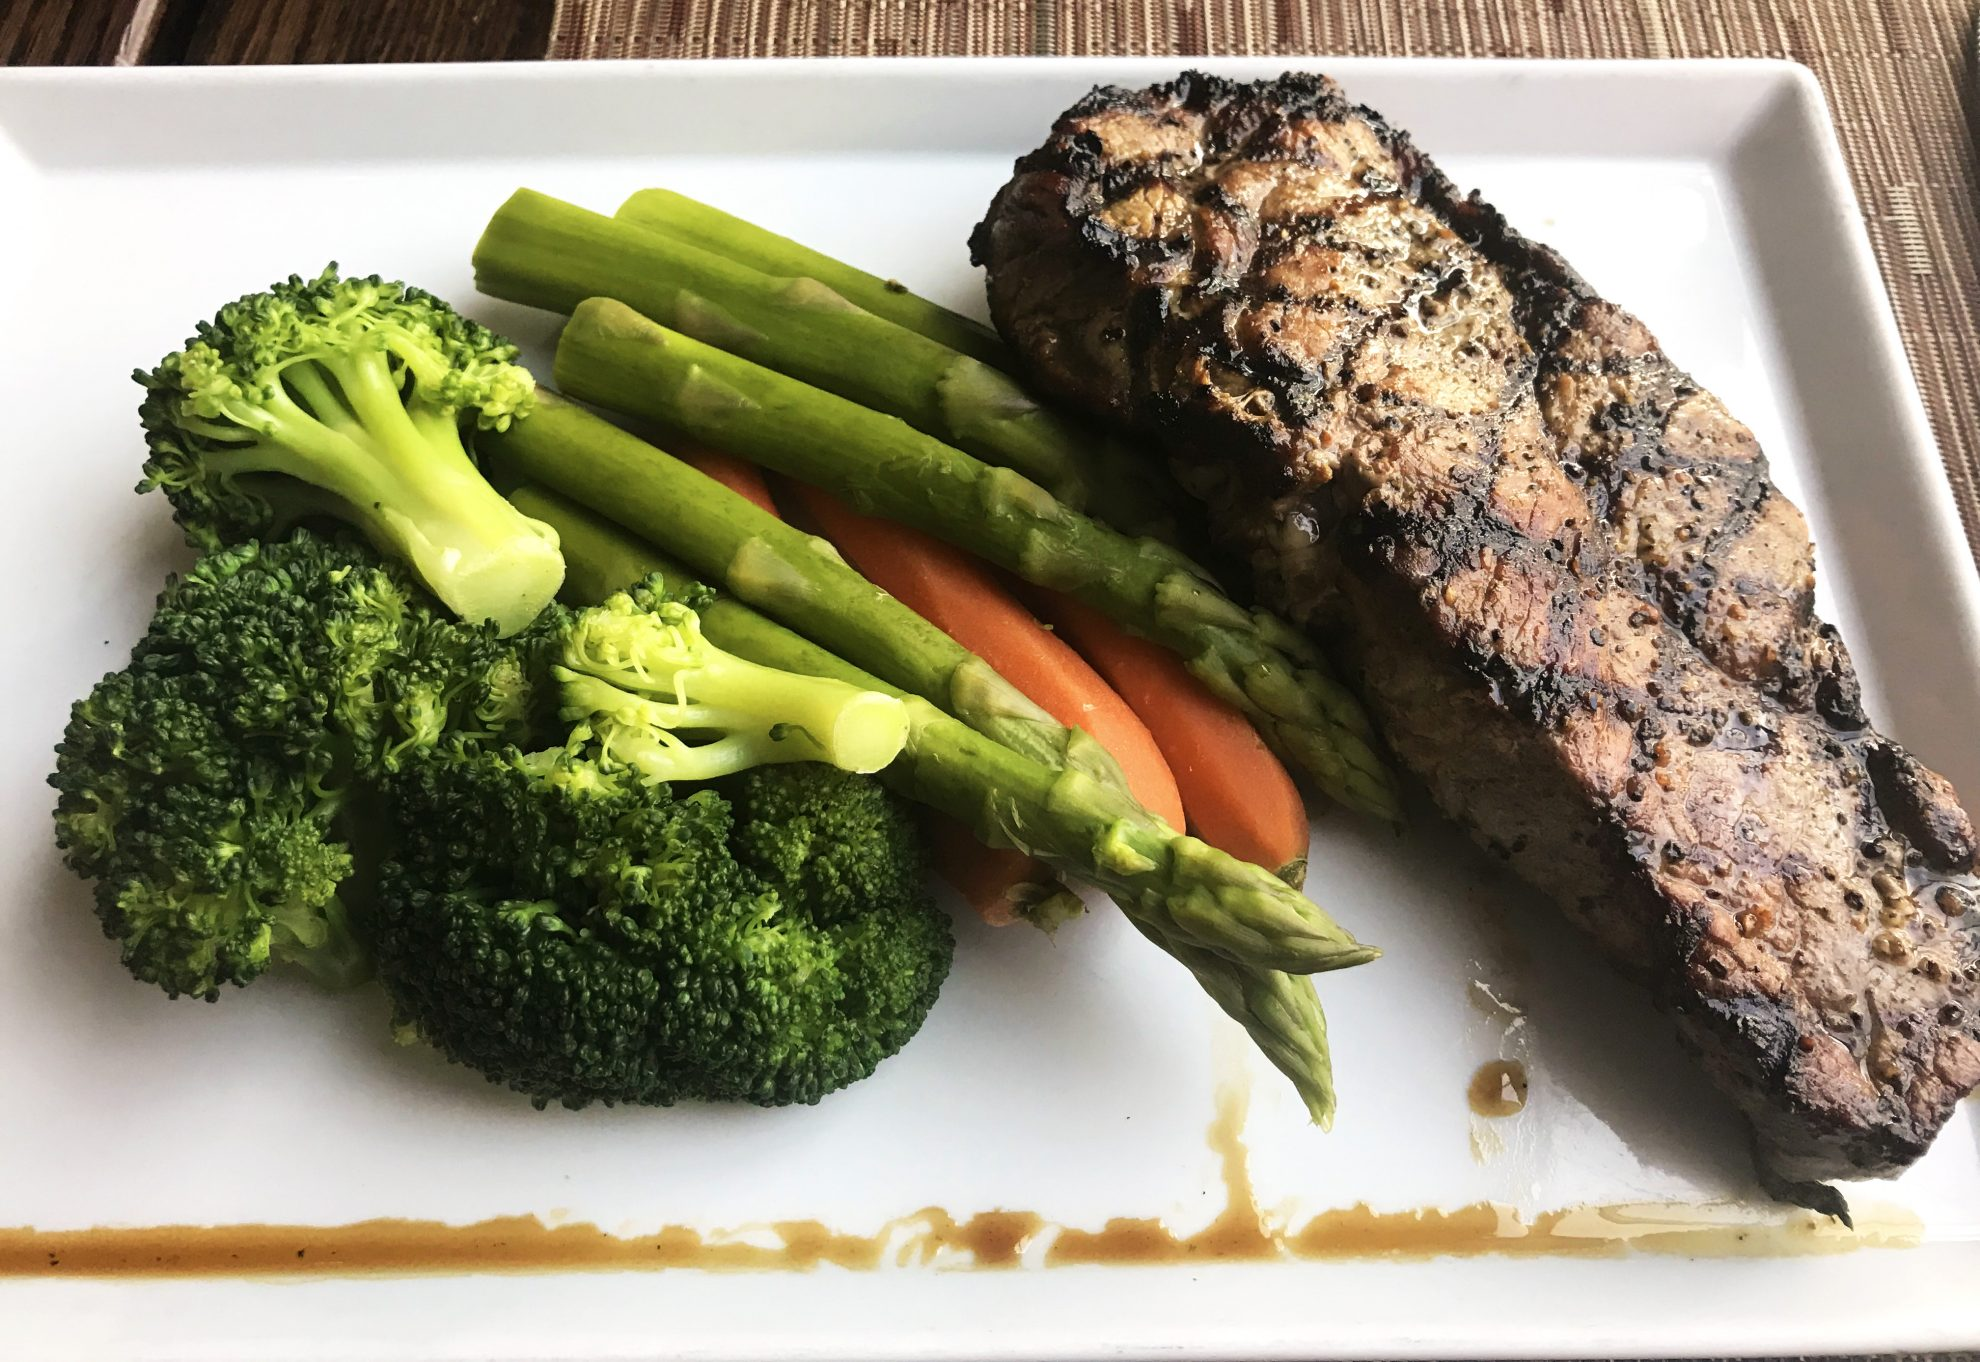 Steak and vegetables from gluten free dining in New York City